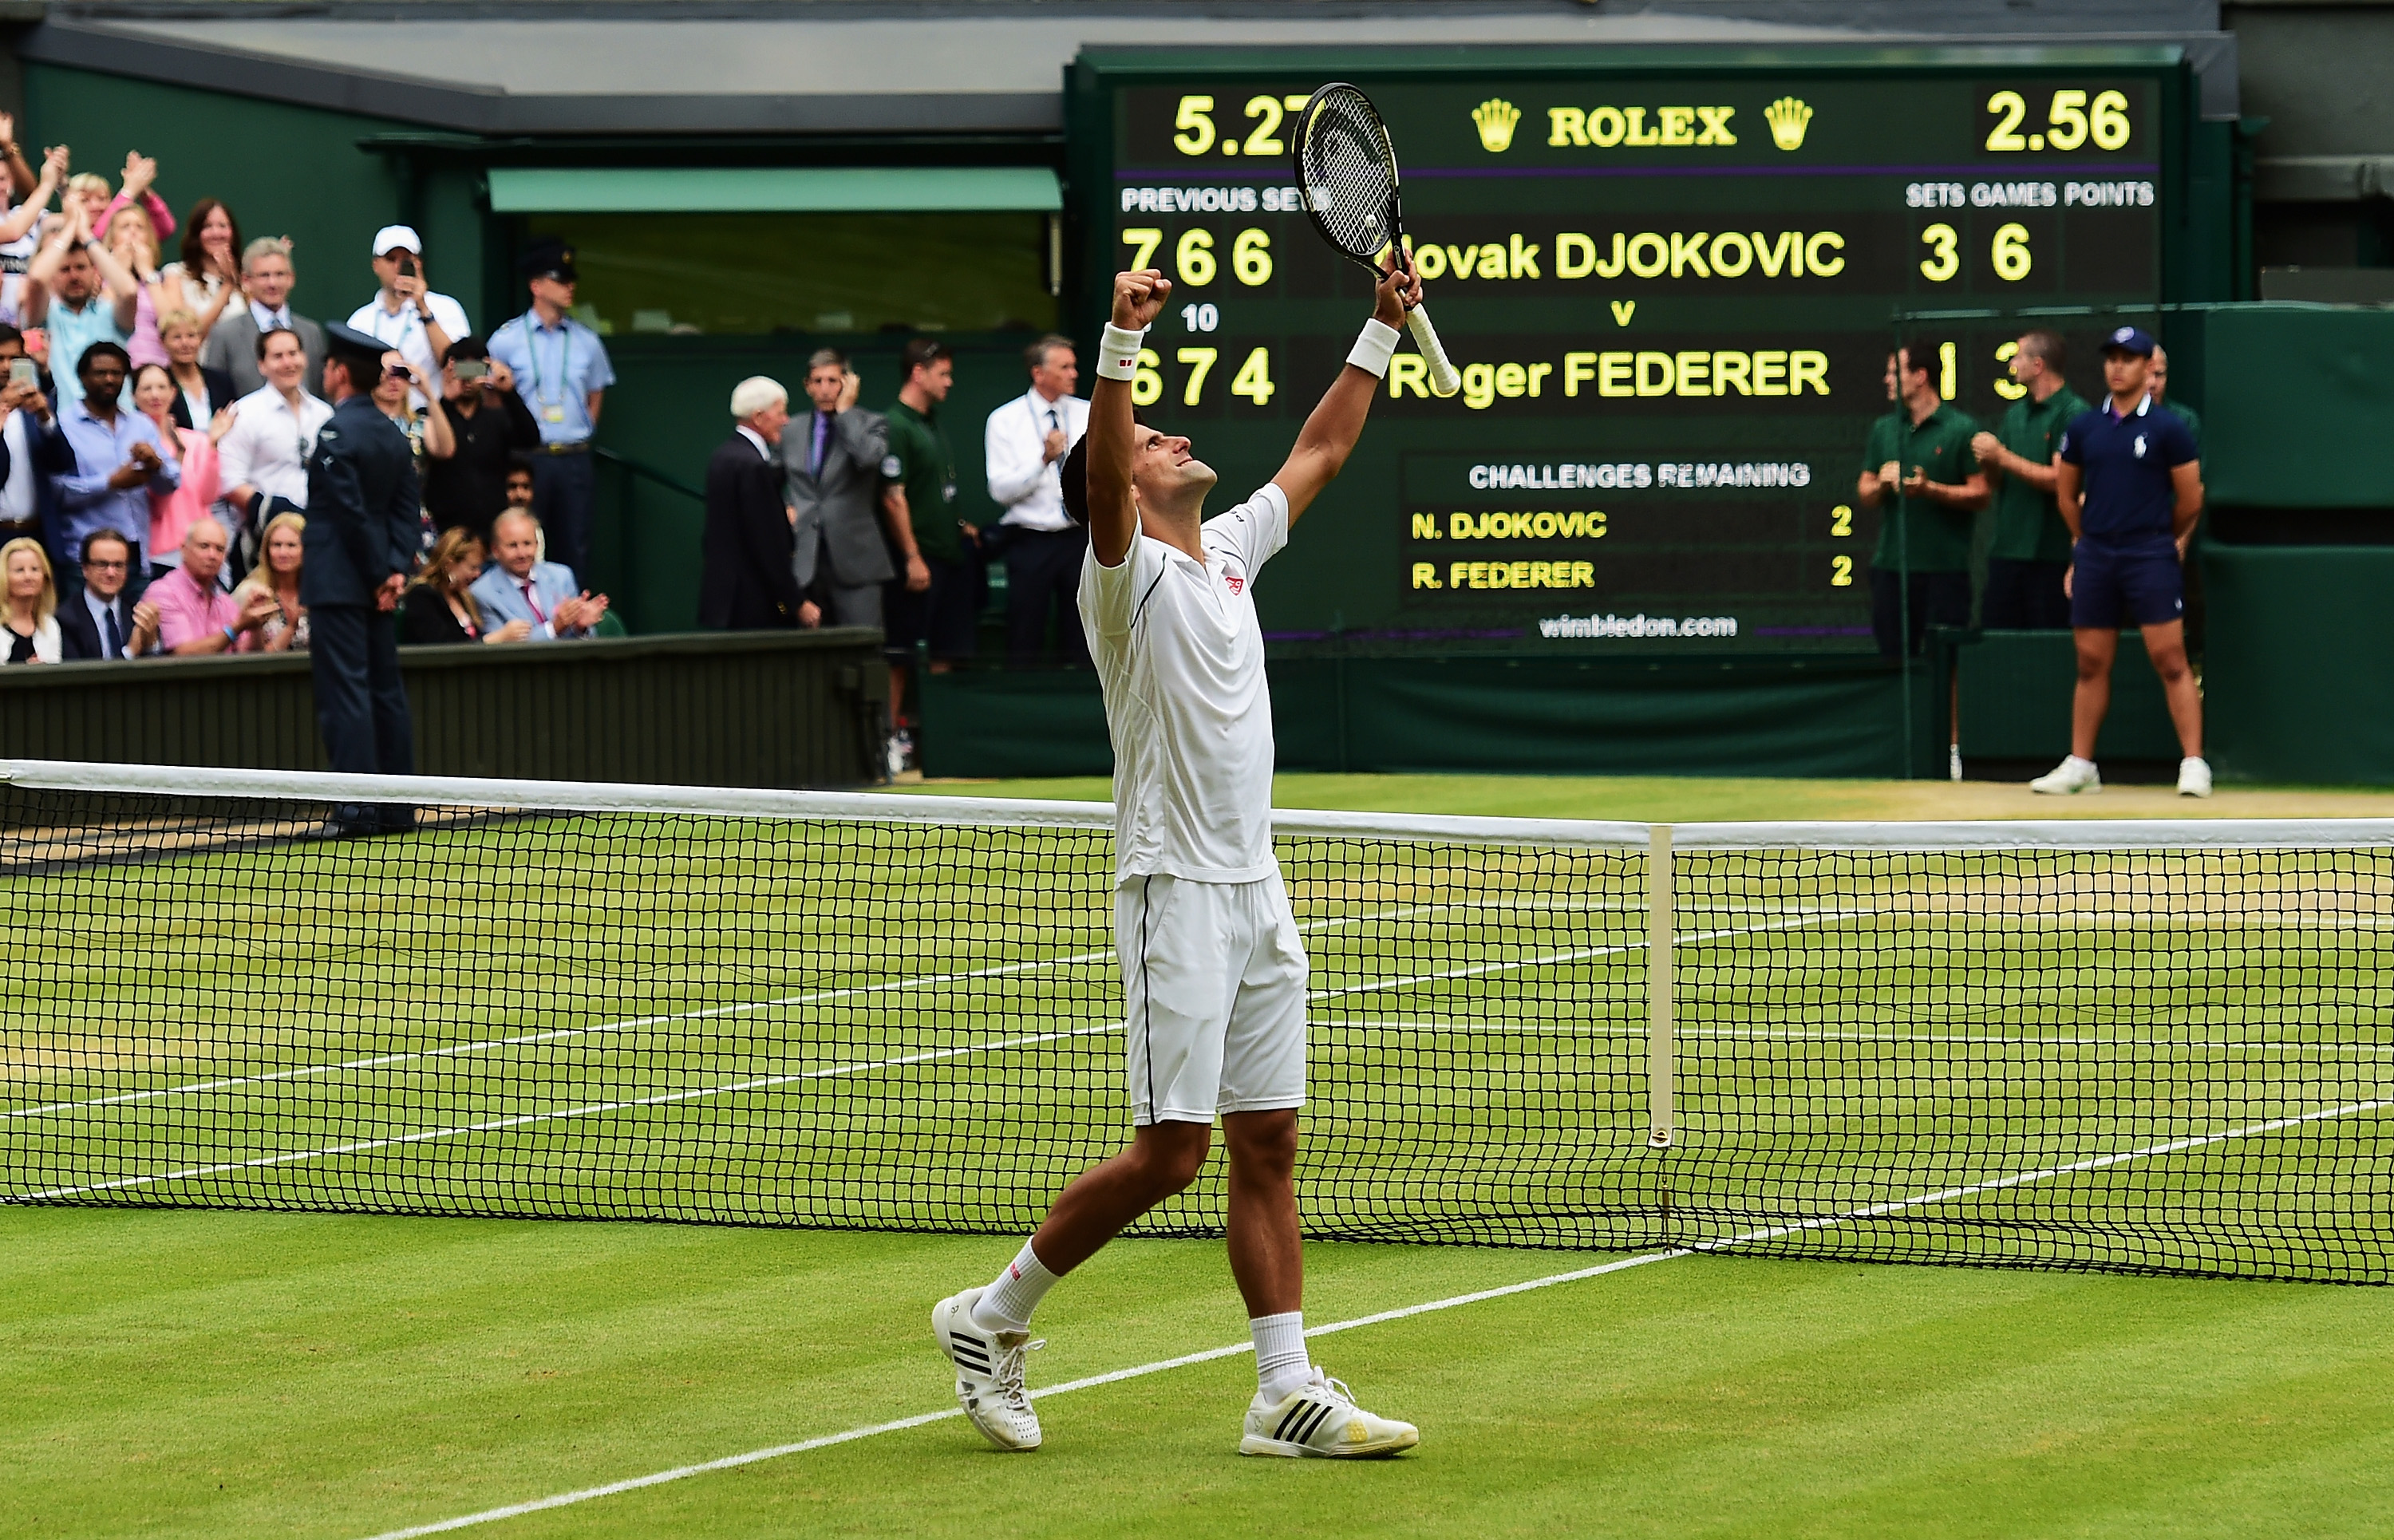 Roger federer vs davydenko betting betting teasers payouts